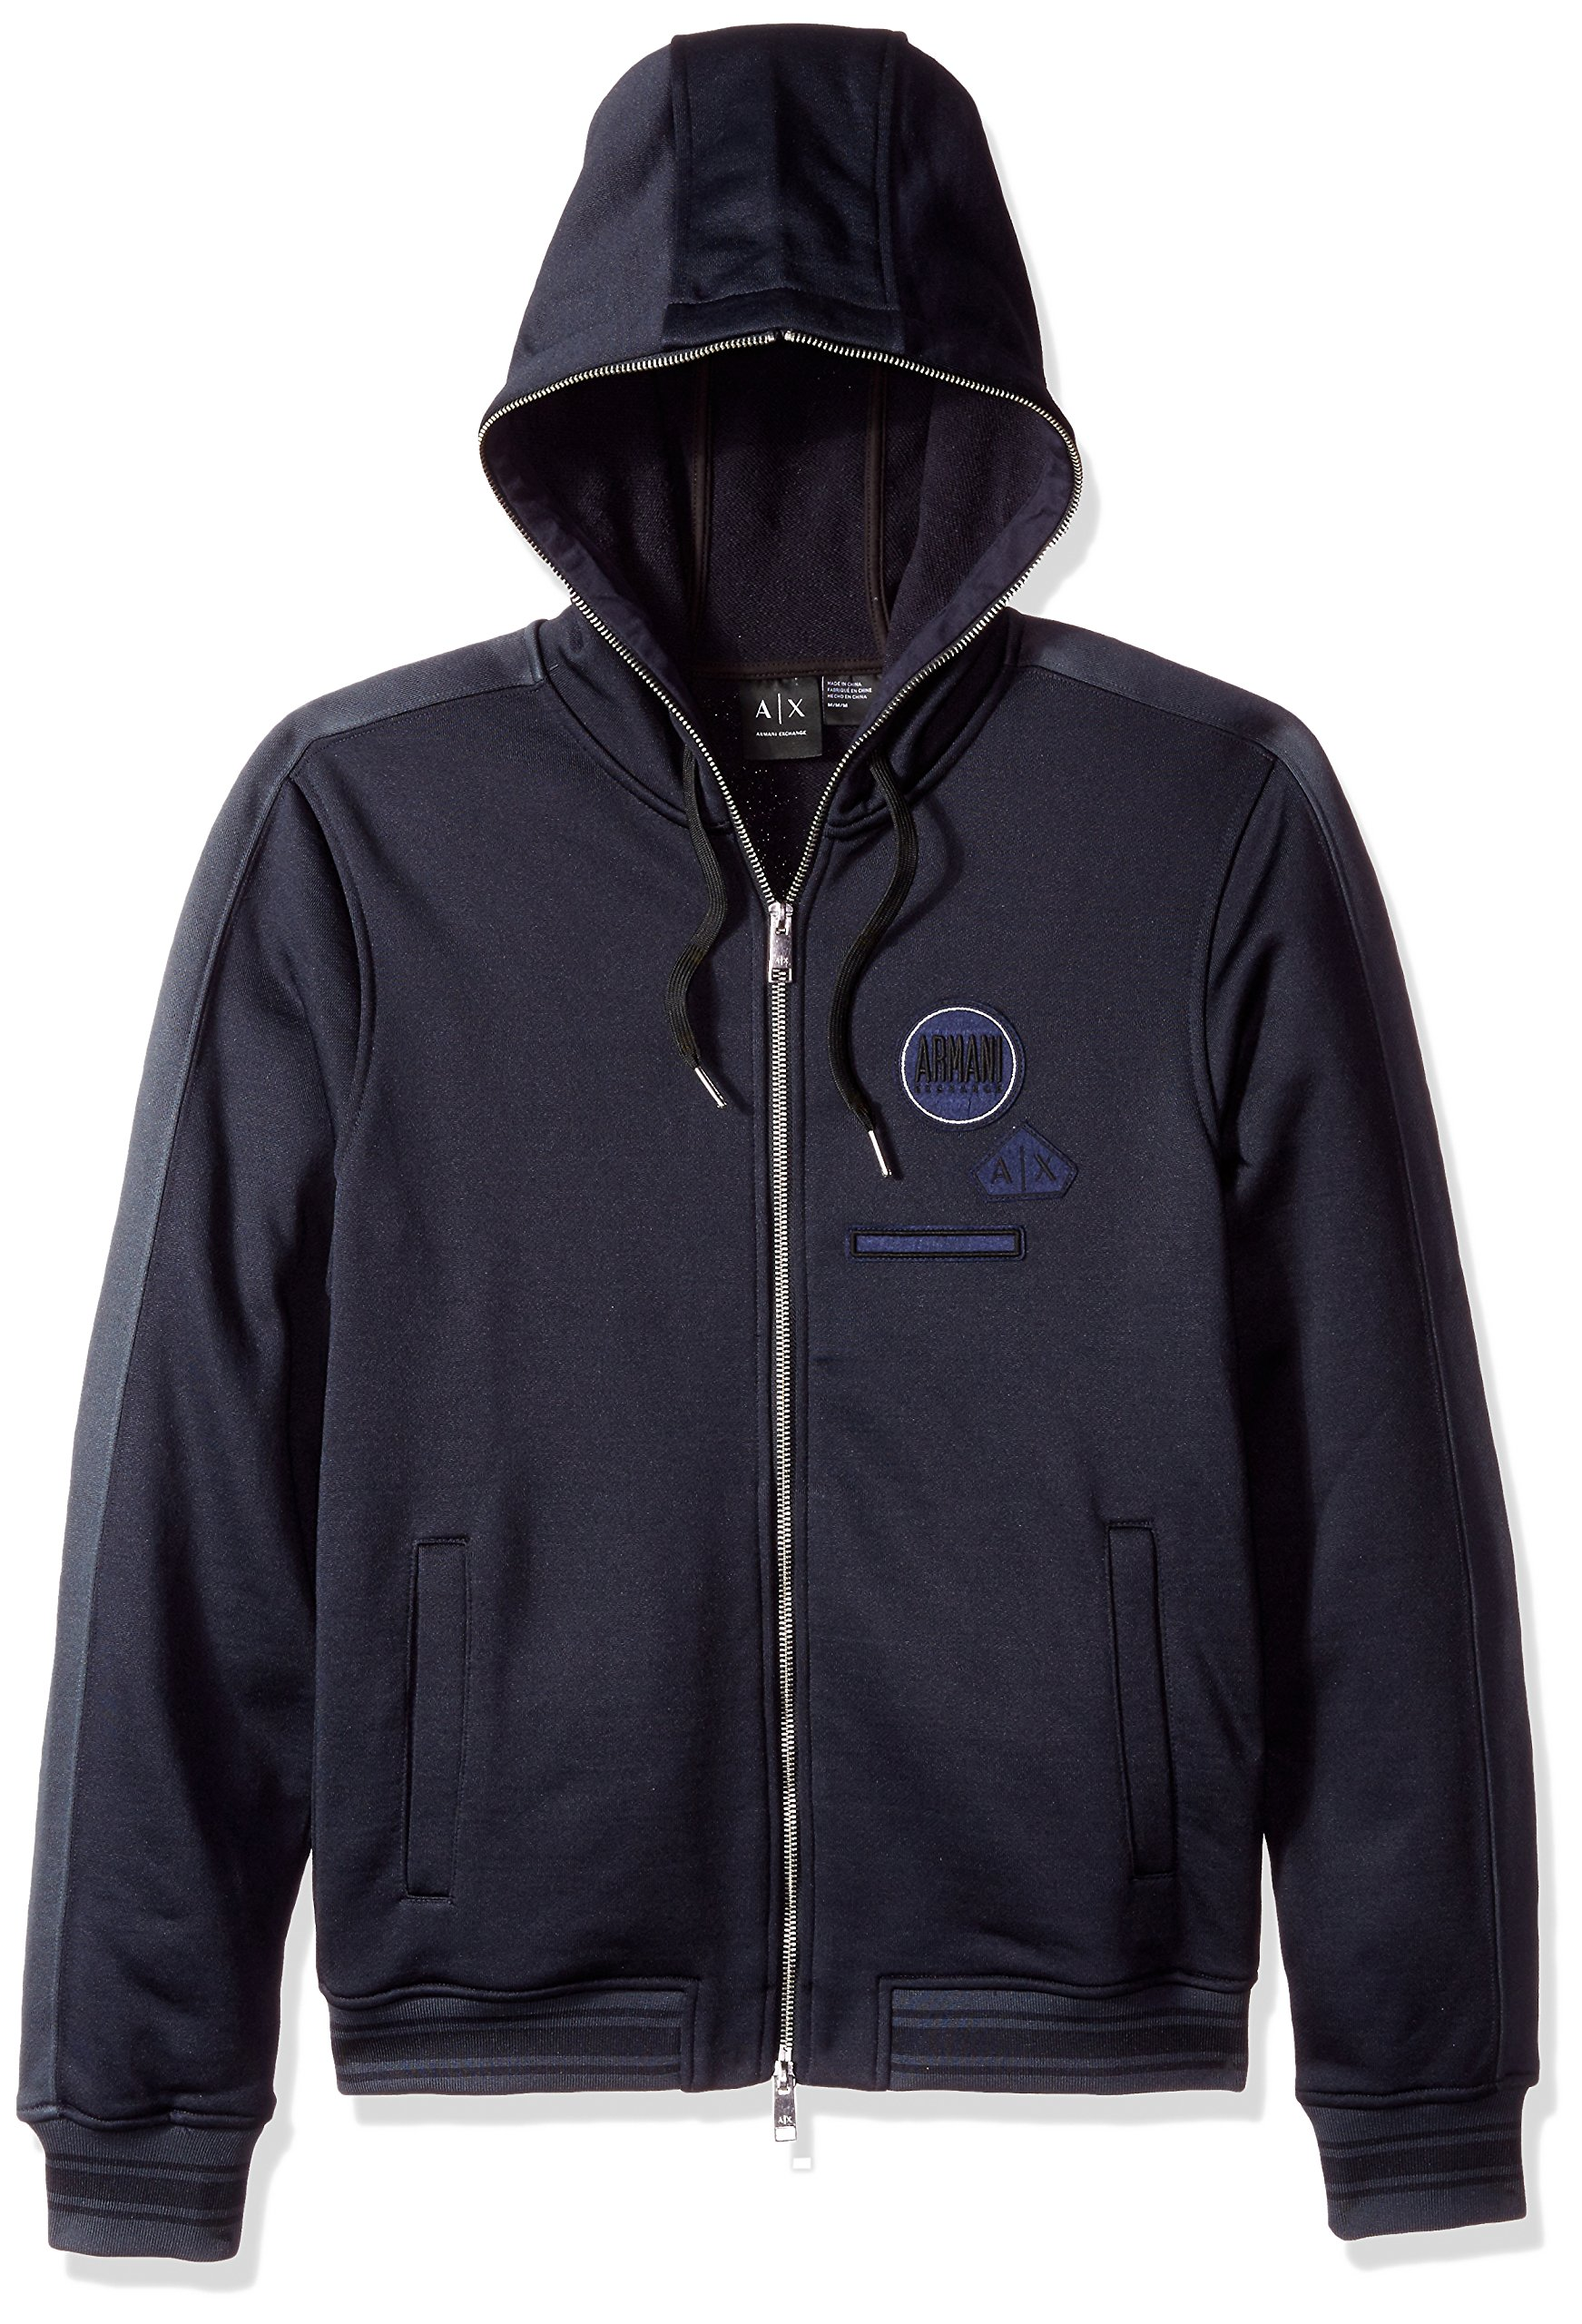 A|X Armani Exchange Men's Varsity Full Zip Hoodie with Patch Detail, Navy, Small